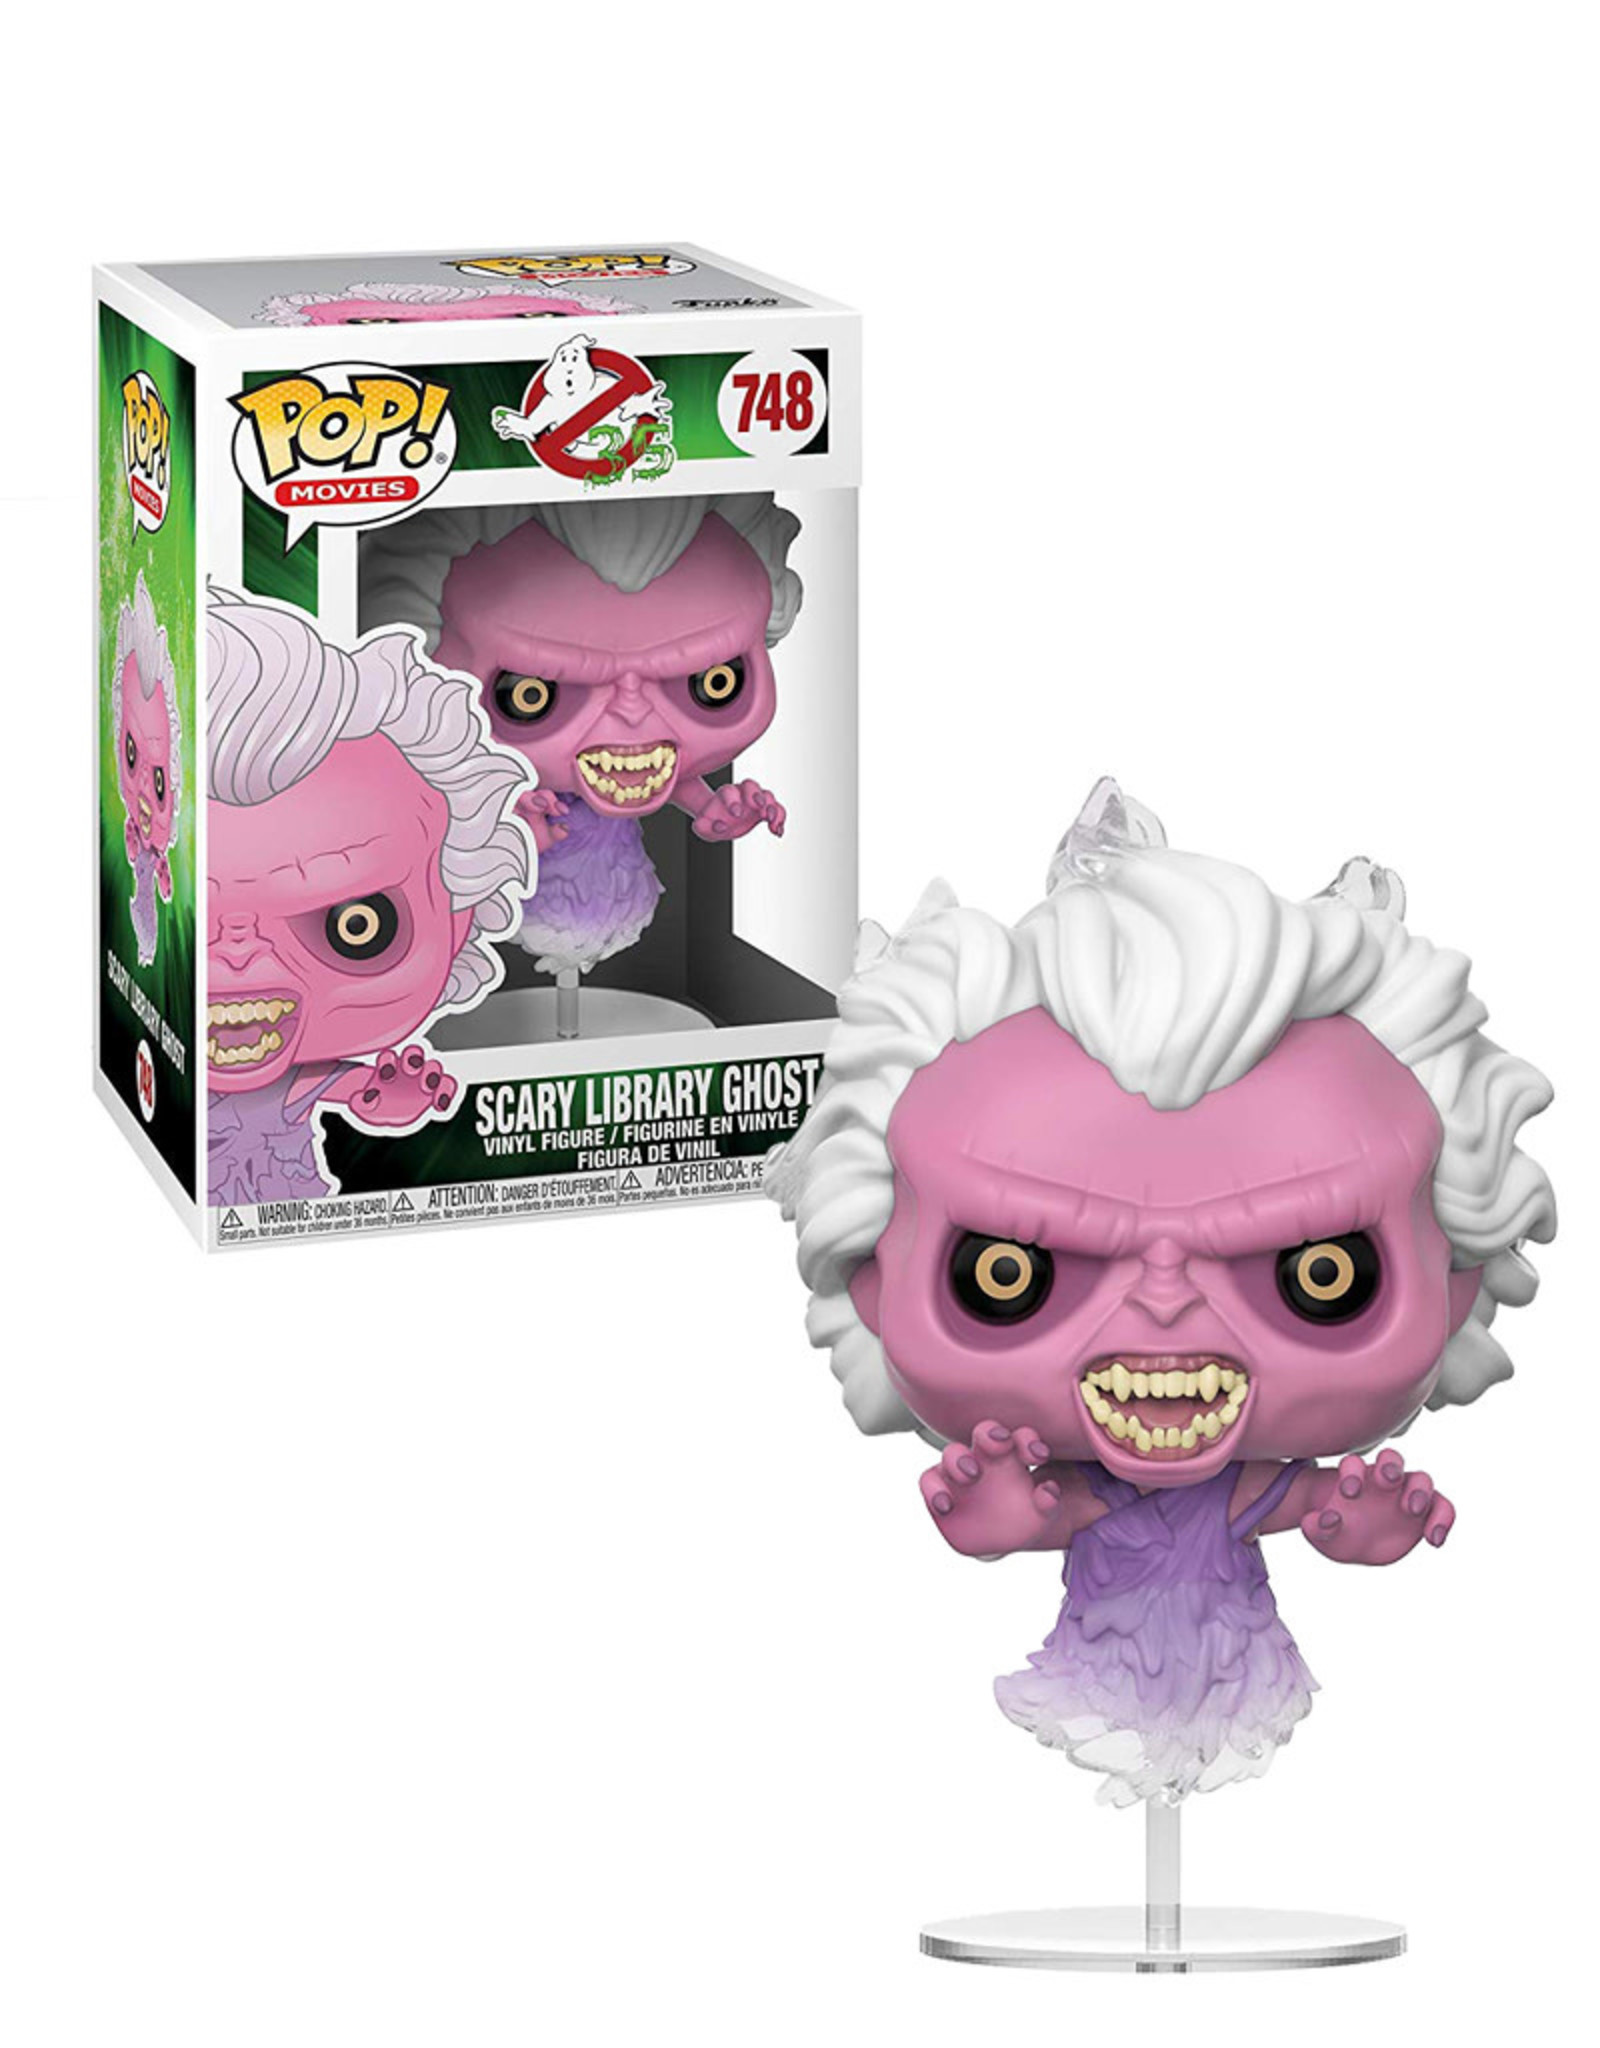 Ghostbusters 748 ( Funko Pop ) Scary Library Ghost